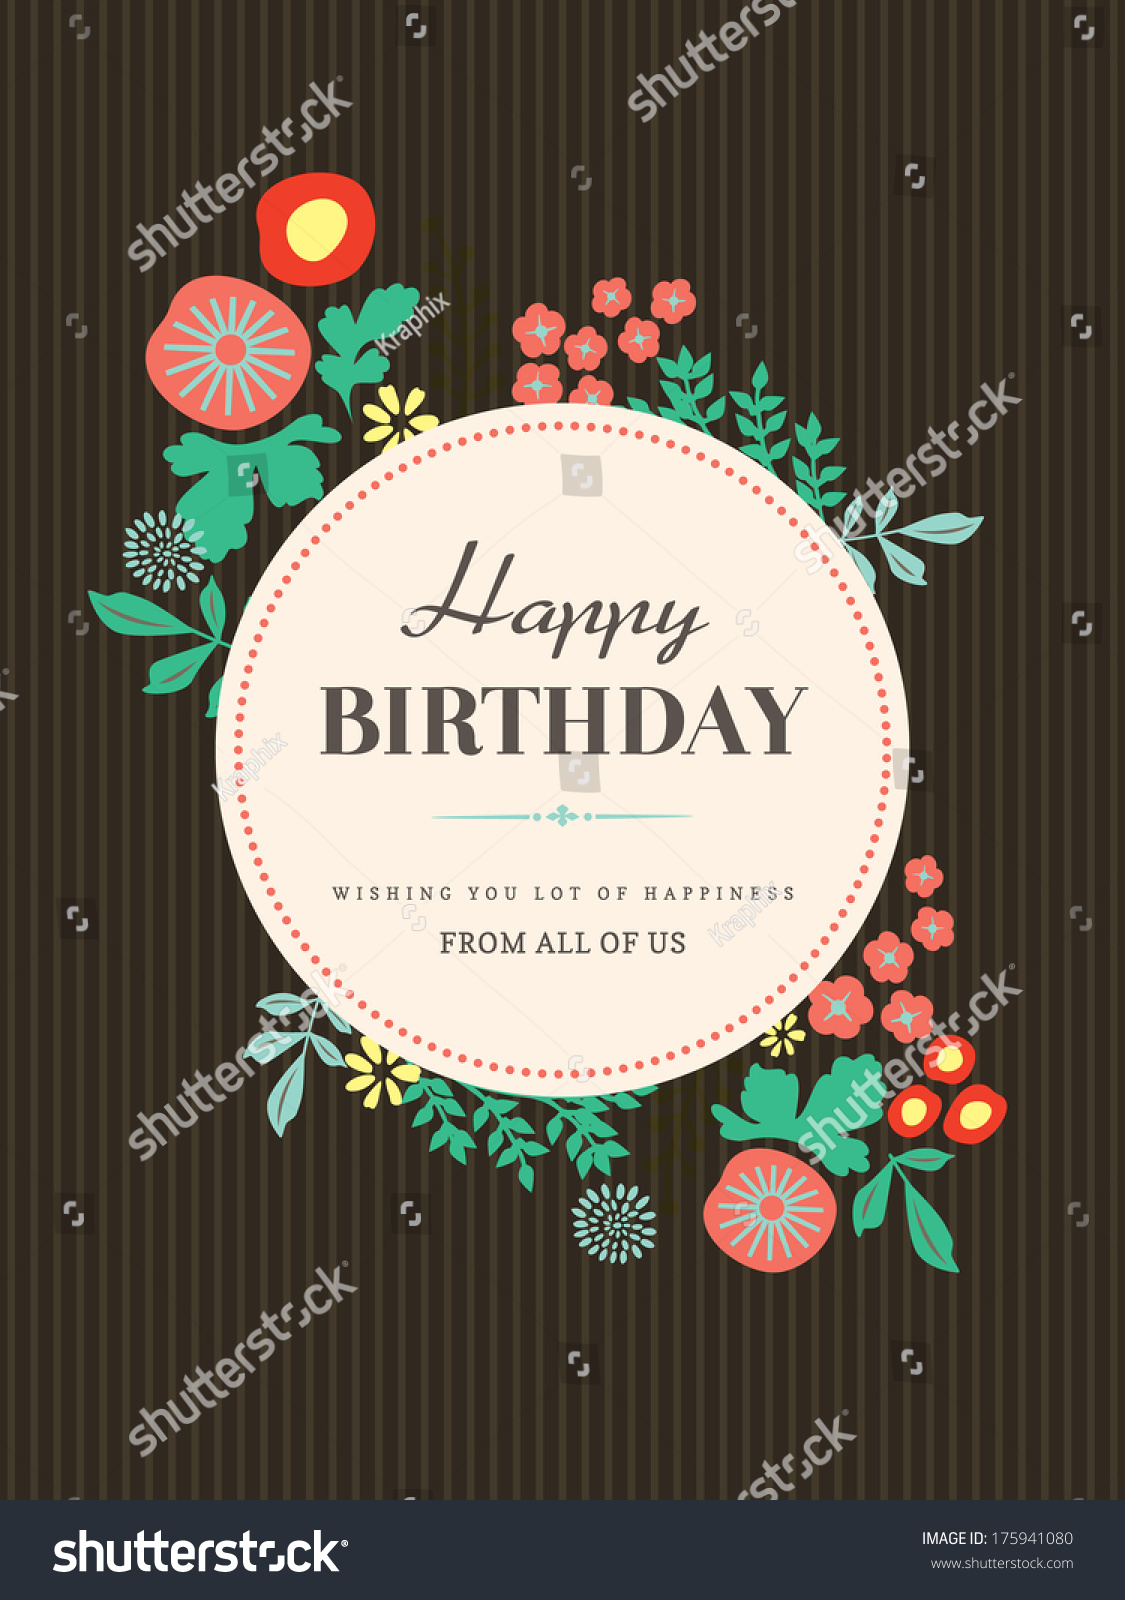 Happy Birthday Card Design Template Floral Vector 175941080 – Template Happy Birthday Card